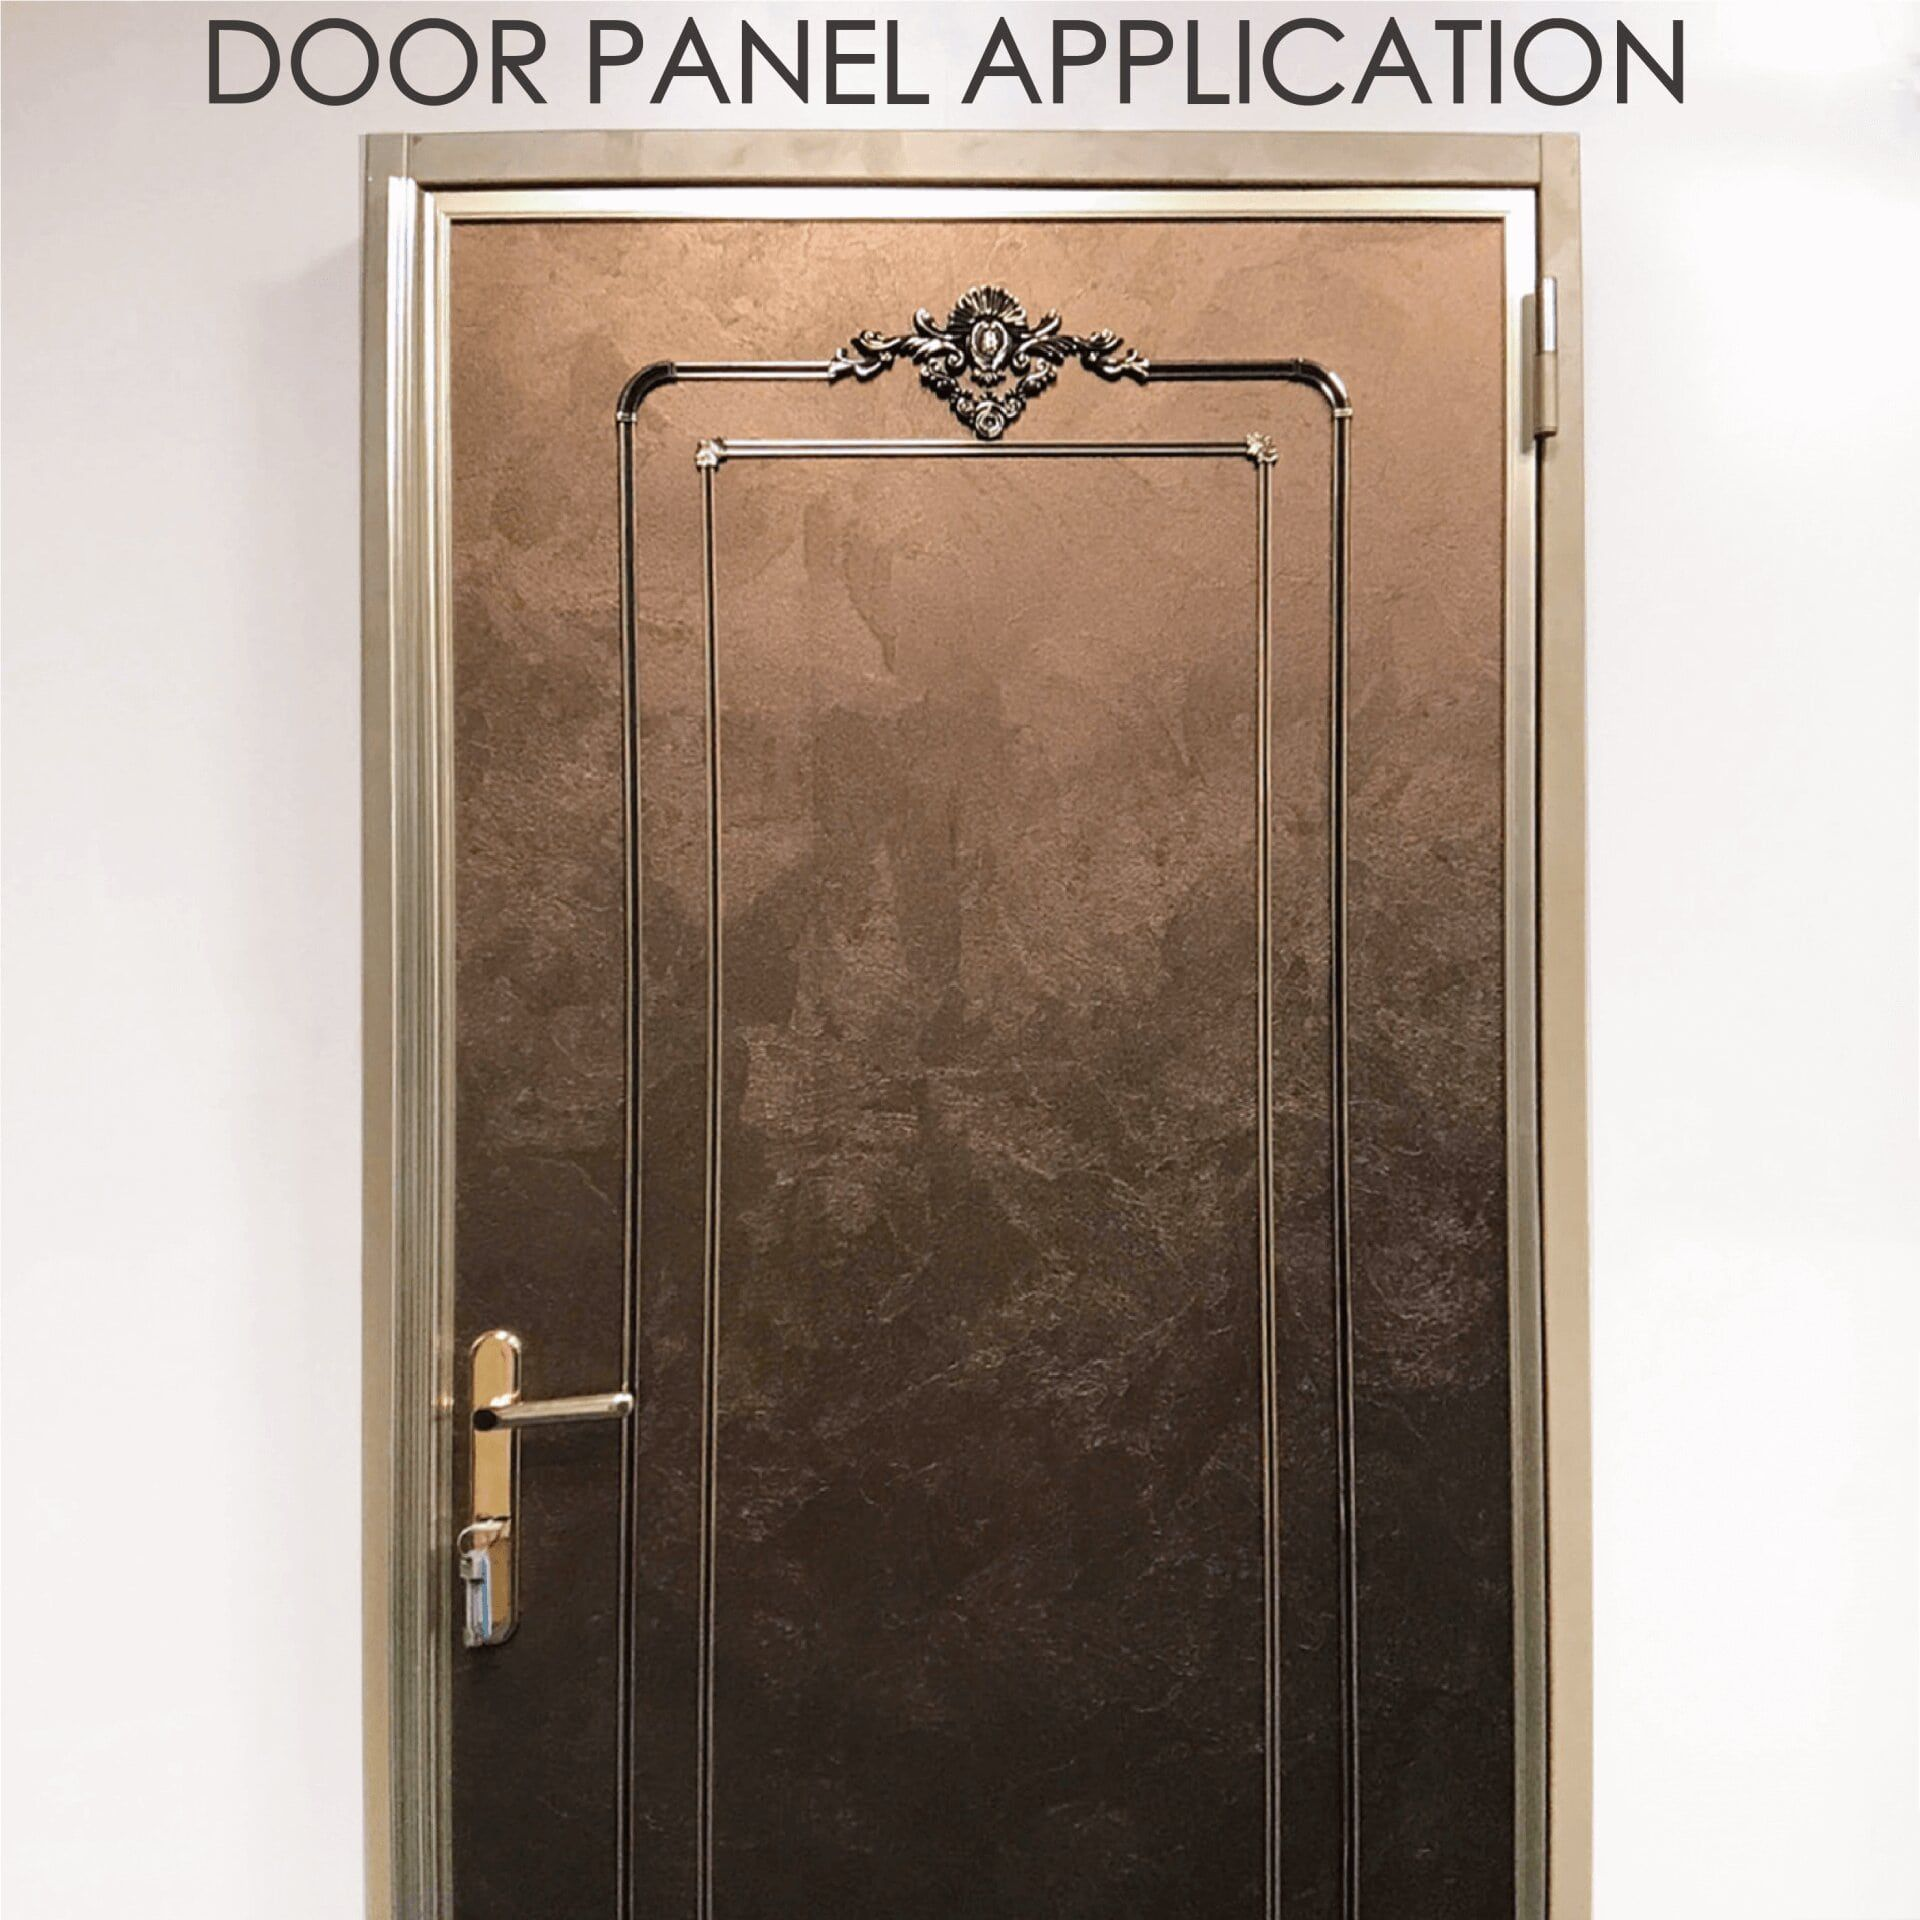 Replacing wooden door with laminated metal can increase safety and durability